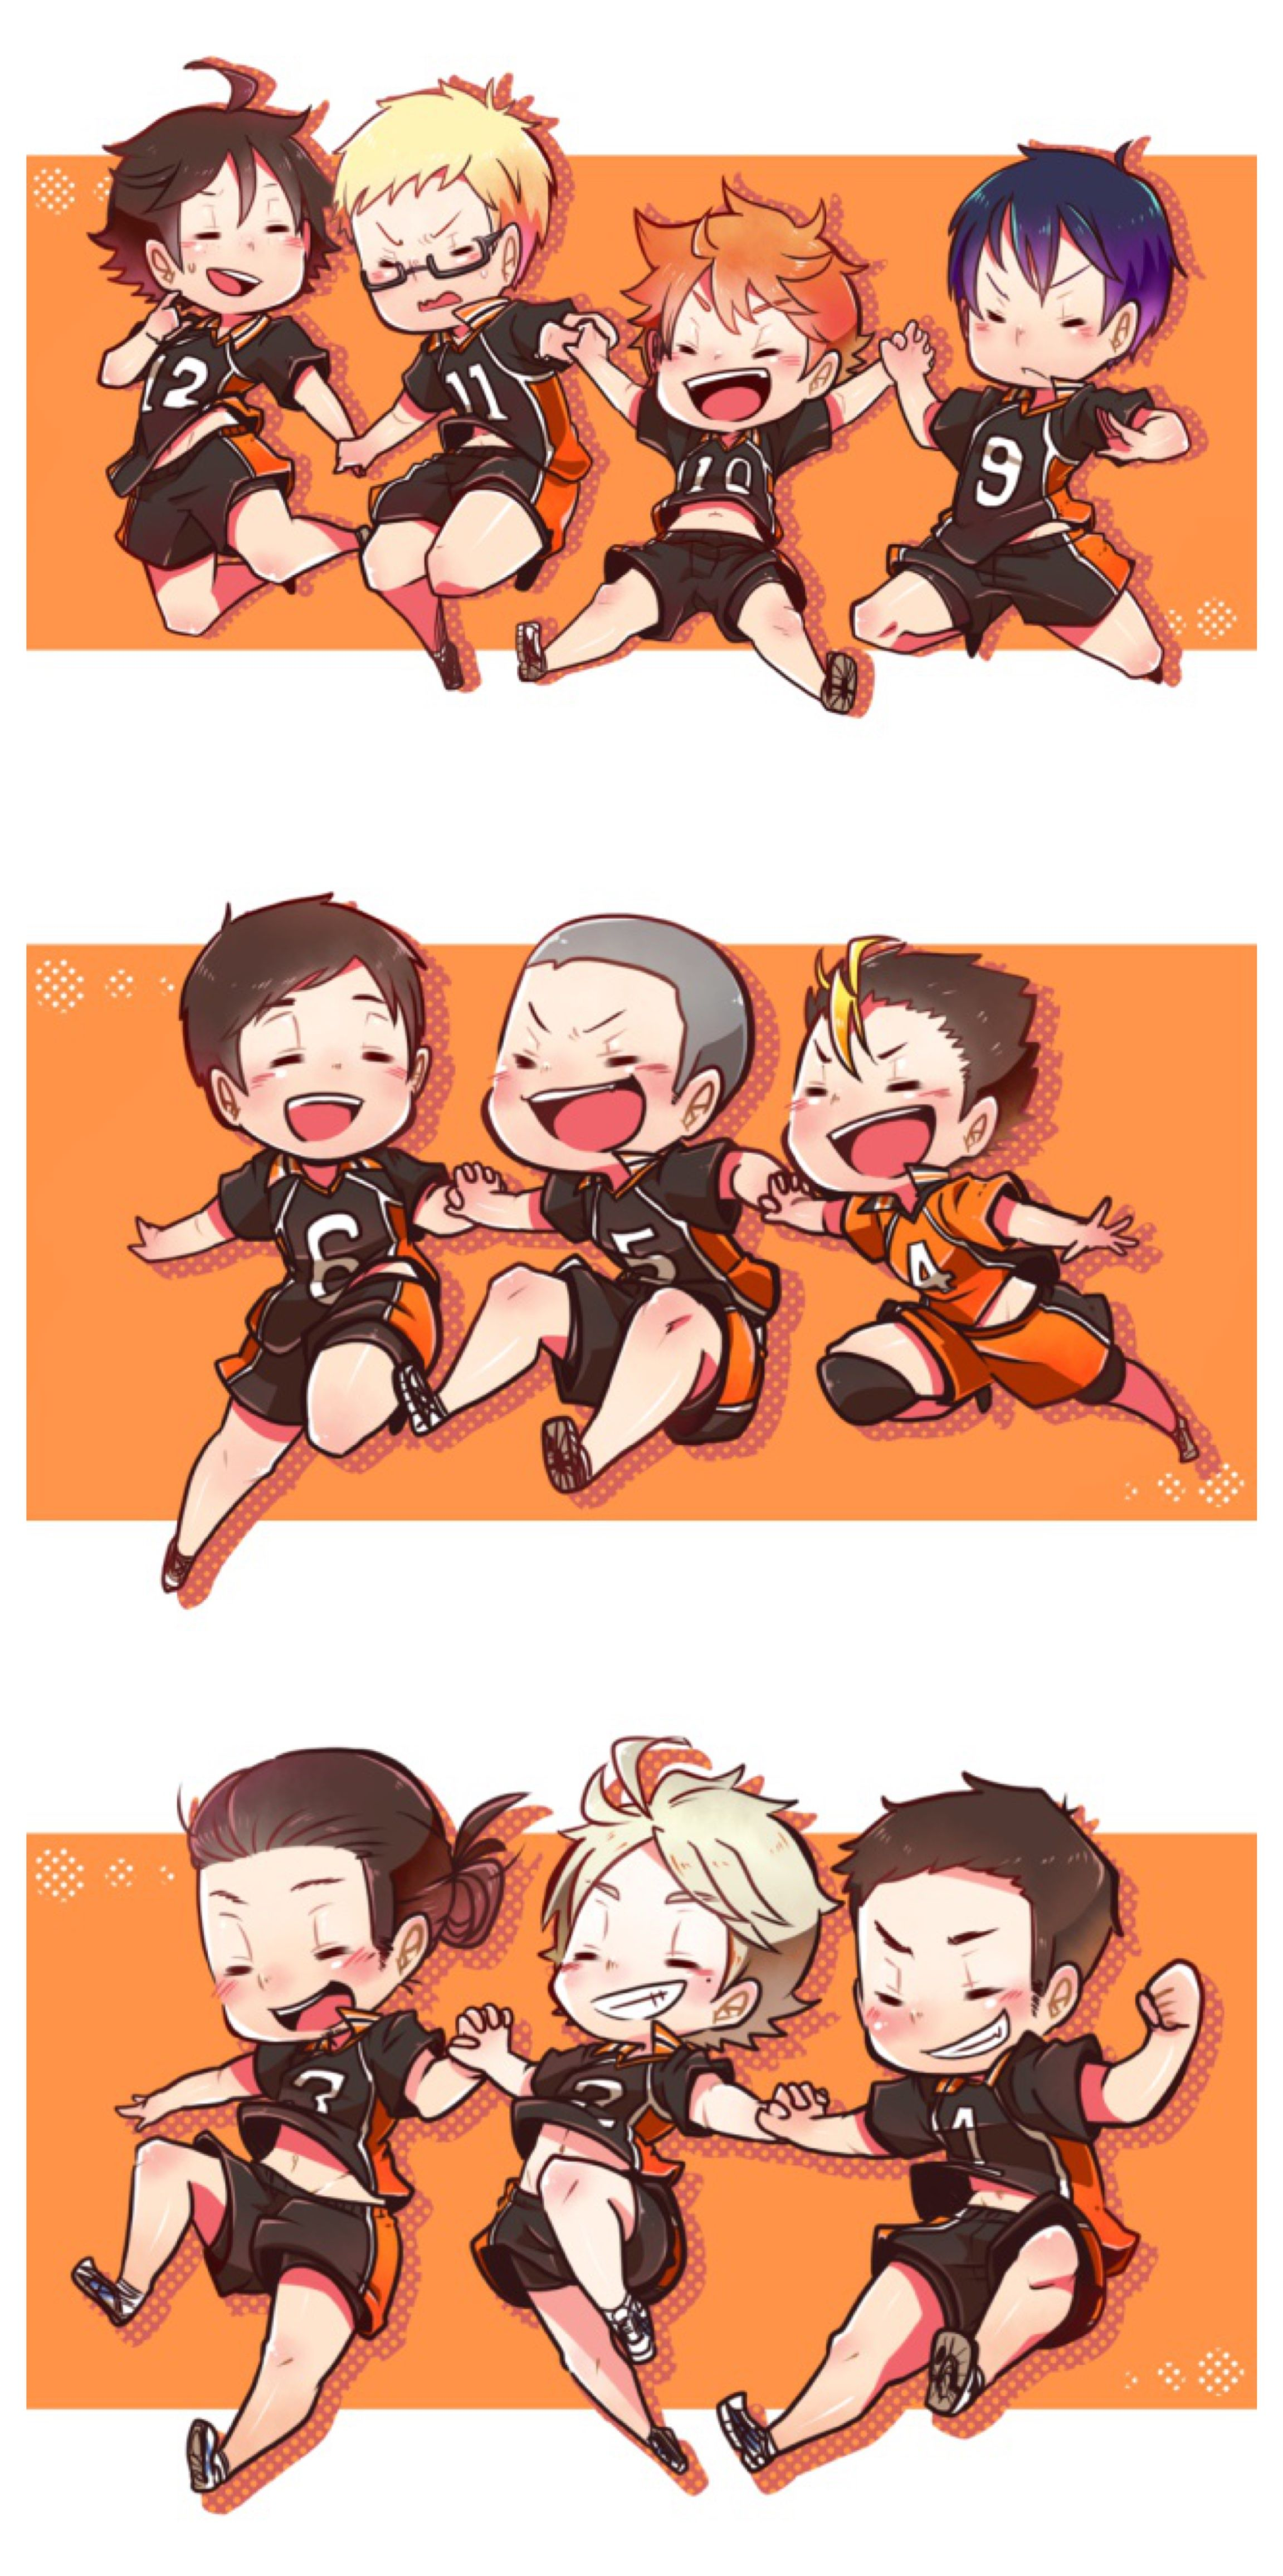 Haikyuu Chibi Please Take A Moment To Appreciate Daichi S Thighs In This Chibi Suga Is As Cute As Always And Haikyuu Karasuno Haikyuu Anime Haikyuu Fanart